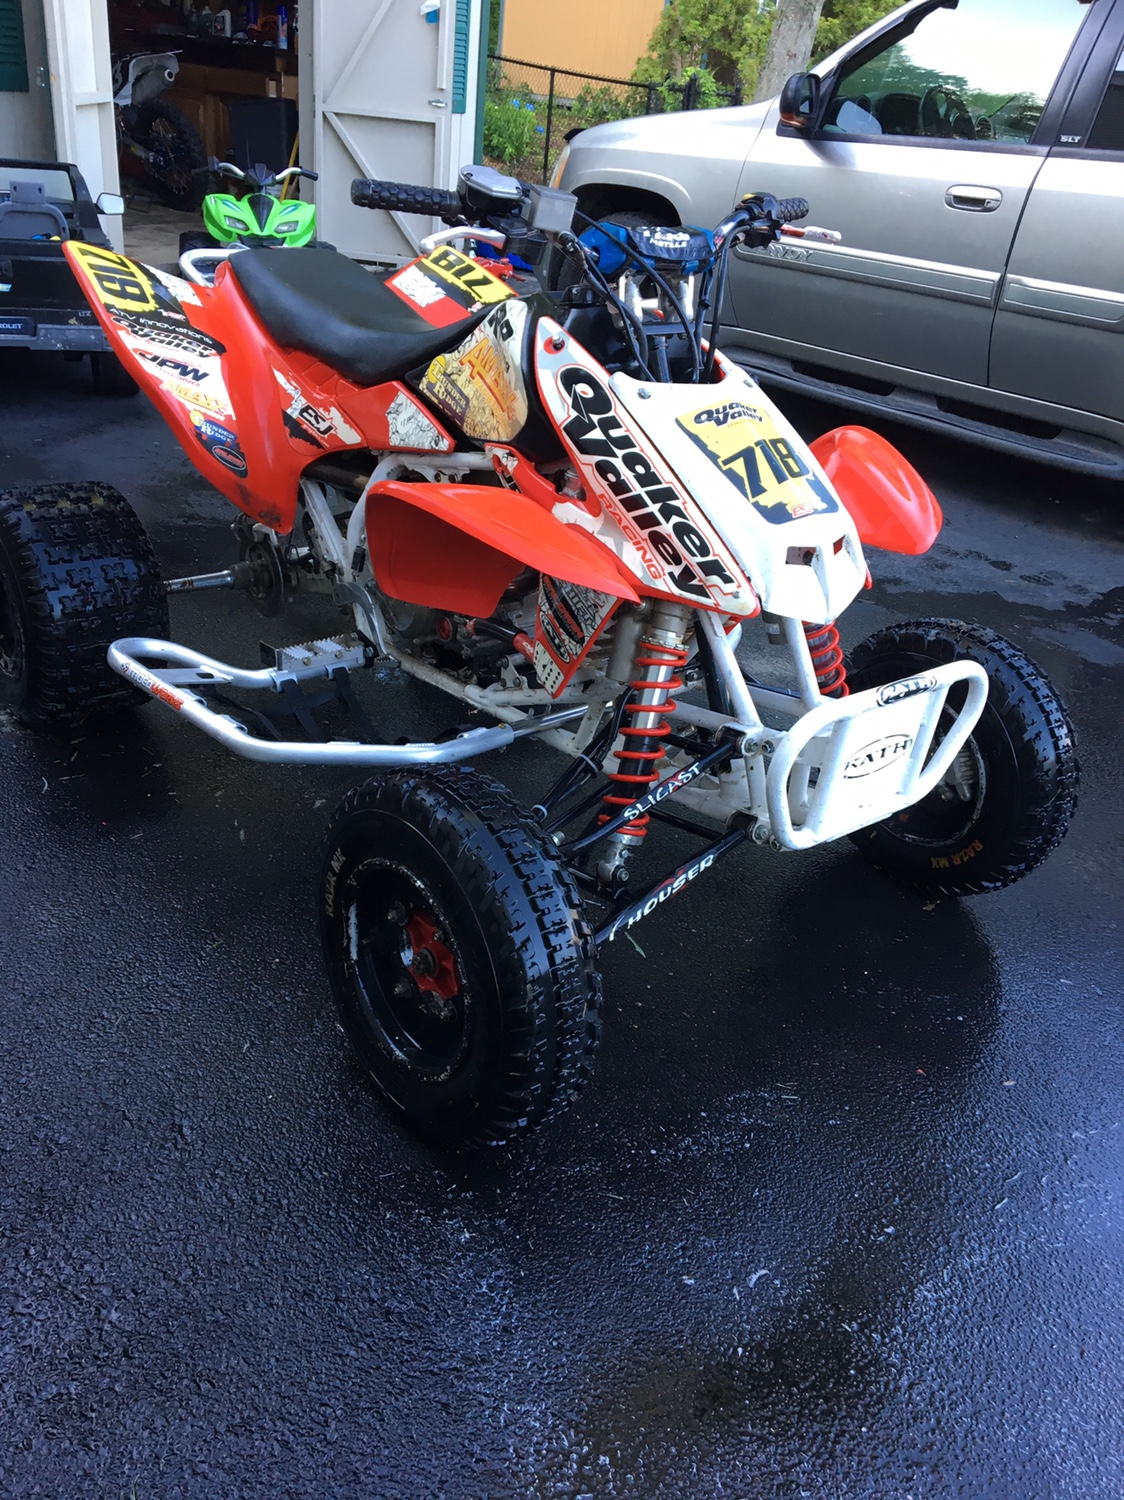 F A moreover Dsc furthermore Img Thumb X R further D Ex Lower Cam Sprocket Gear Crank Removal Crank as well Tim X. on 2007 honda trx 250ex